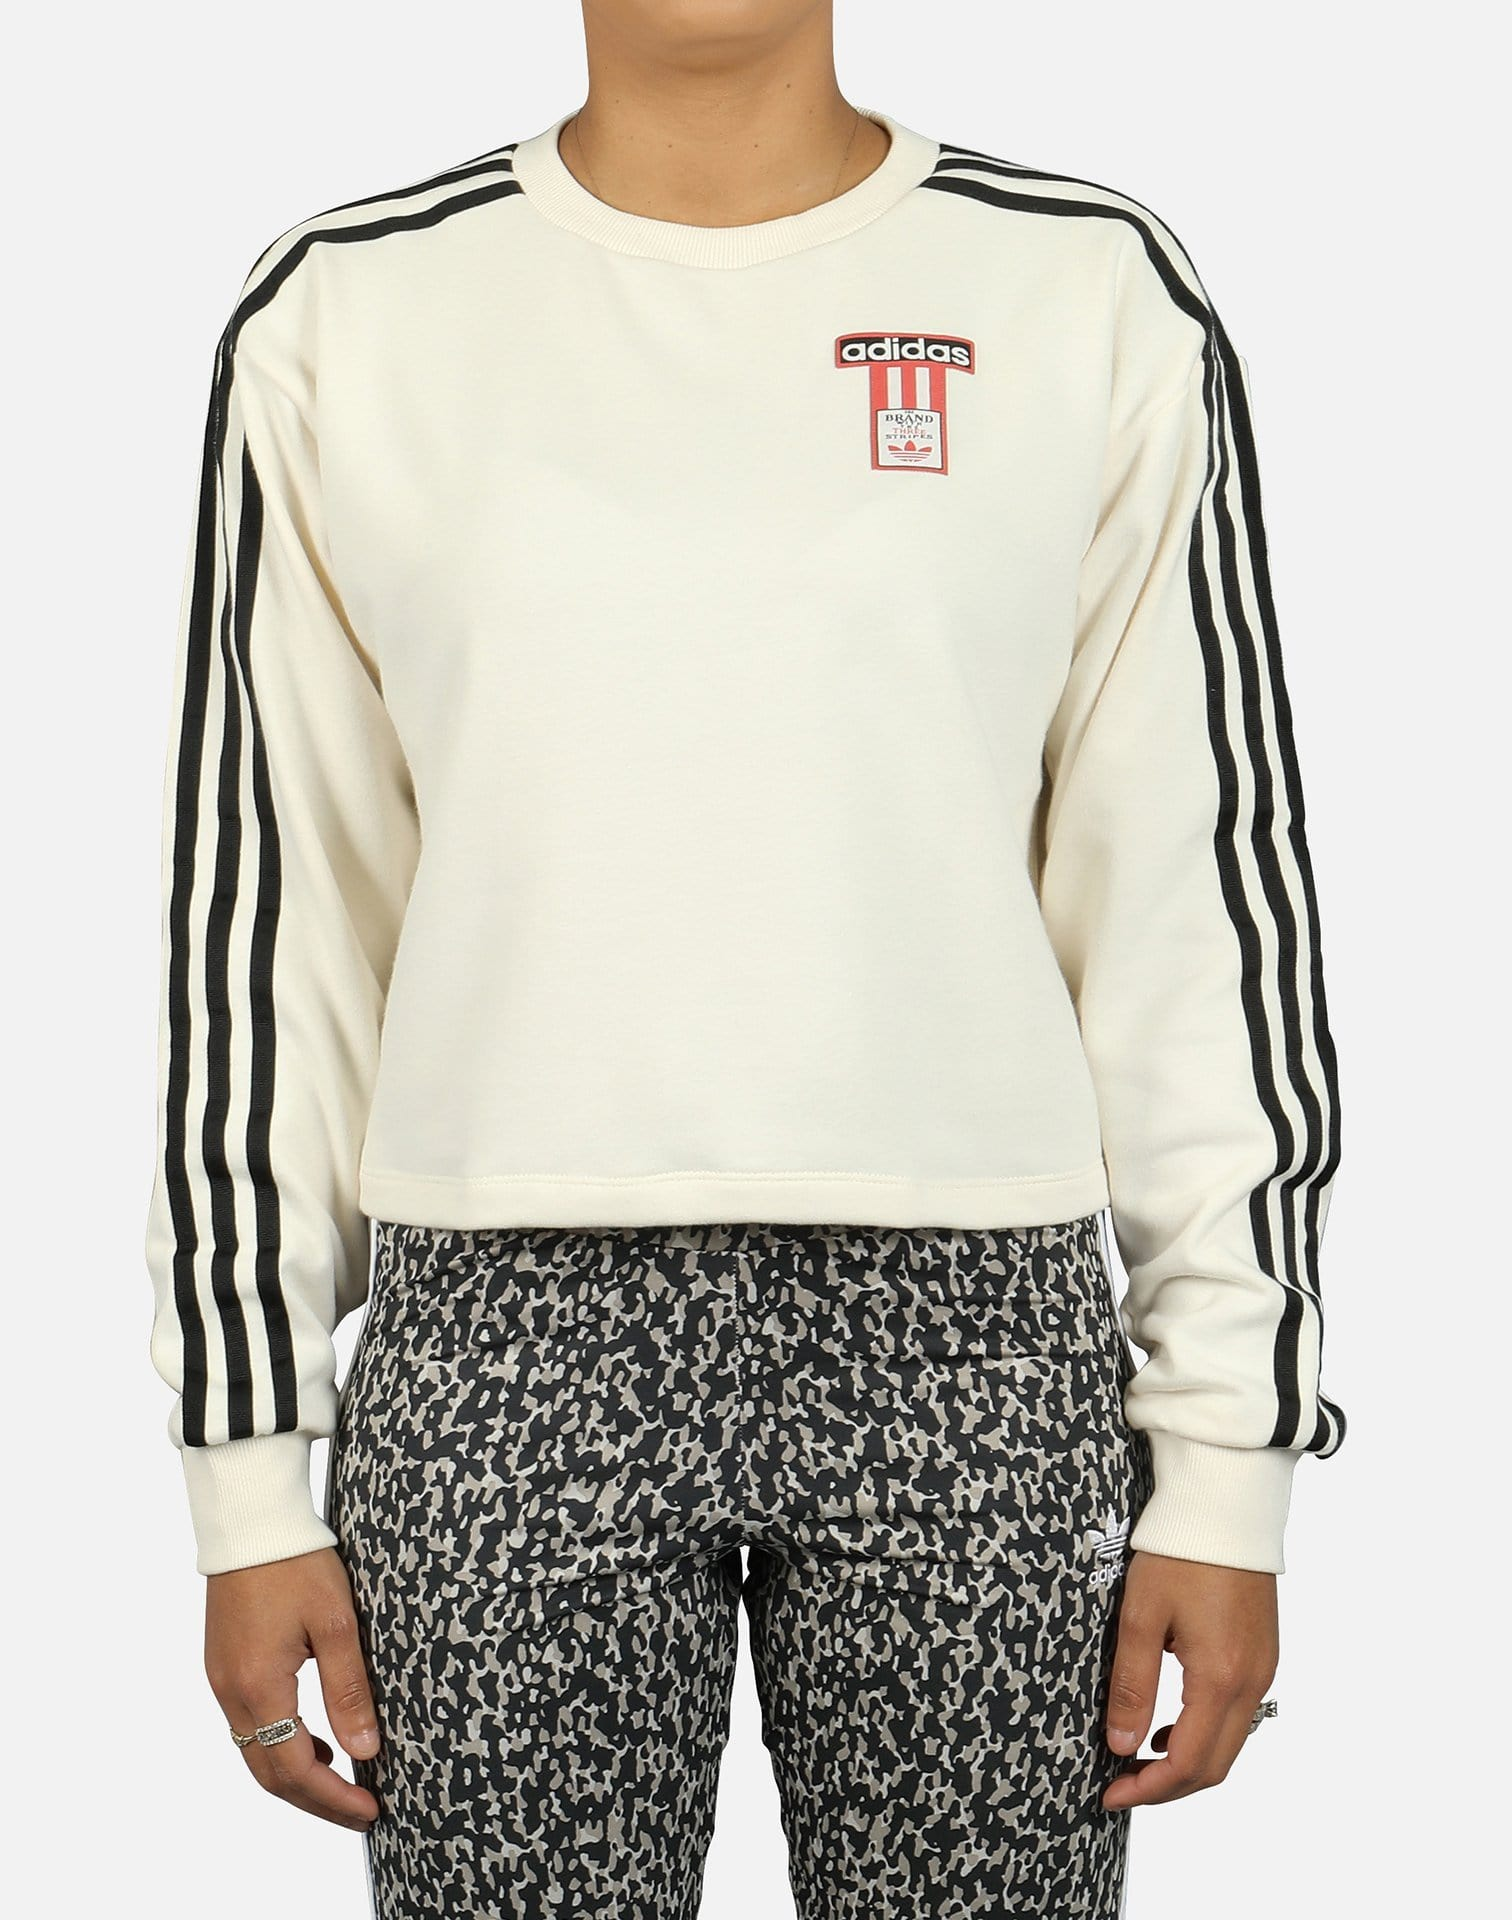 adidas Women's Adibreak Terry Logo Sweatshirt